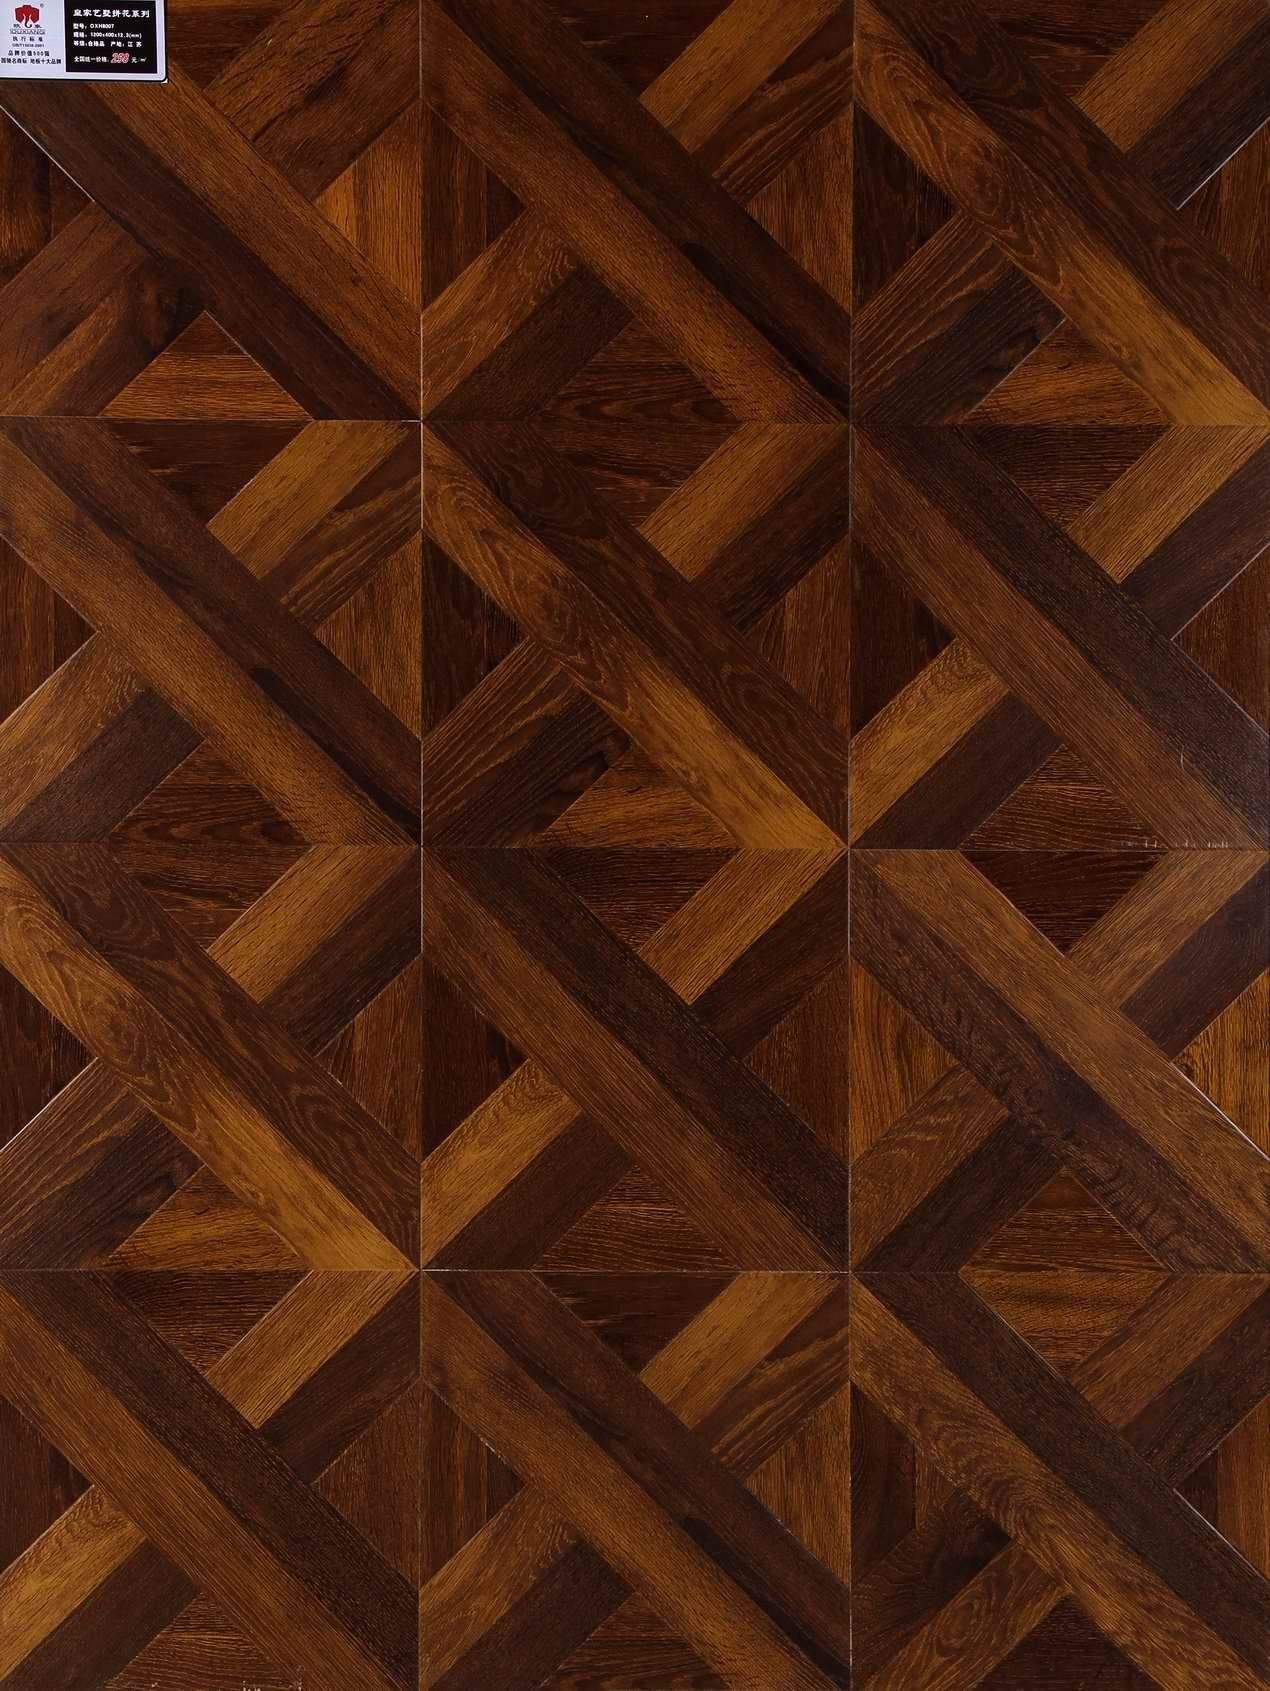 Dream flooring 3 parquet flooring oxh8007 g 12701691 china parquet flooring large image for parquet dailygadgetfo Choice Image